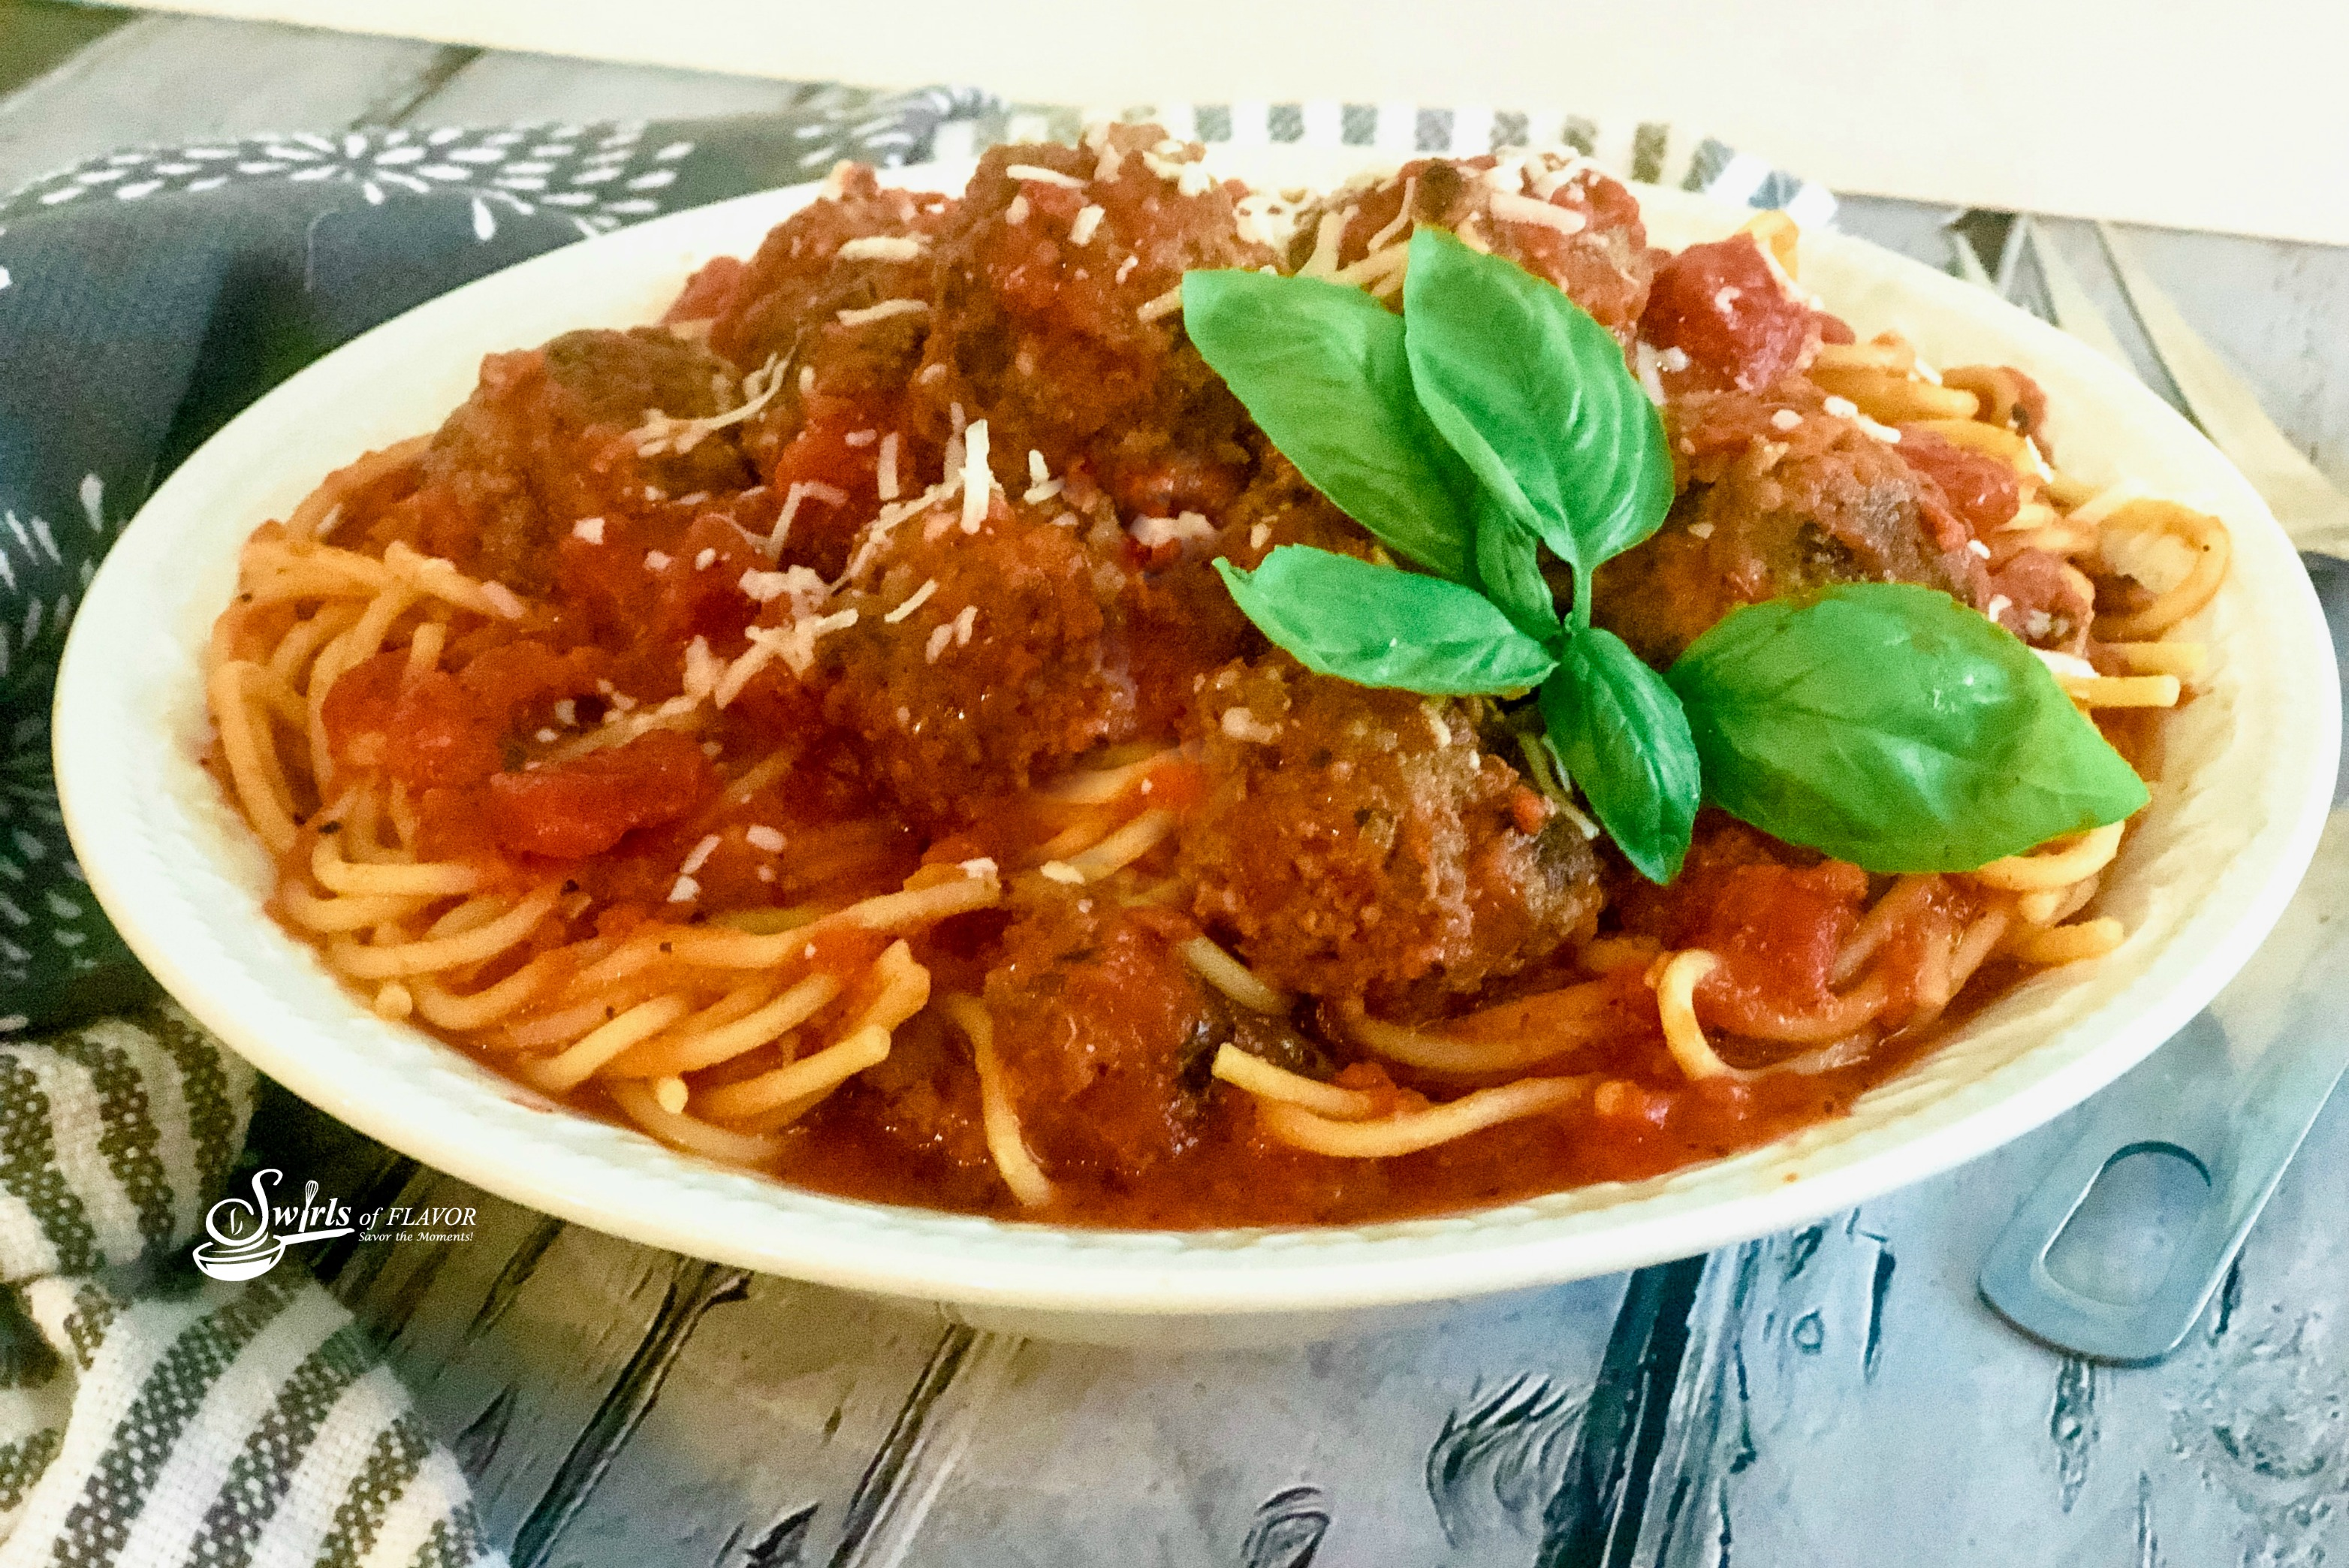 Bowl of spaghetti and meatballs